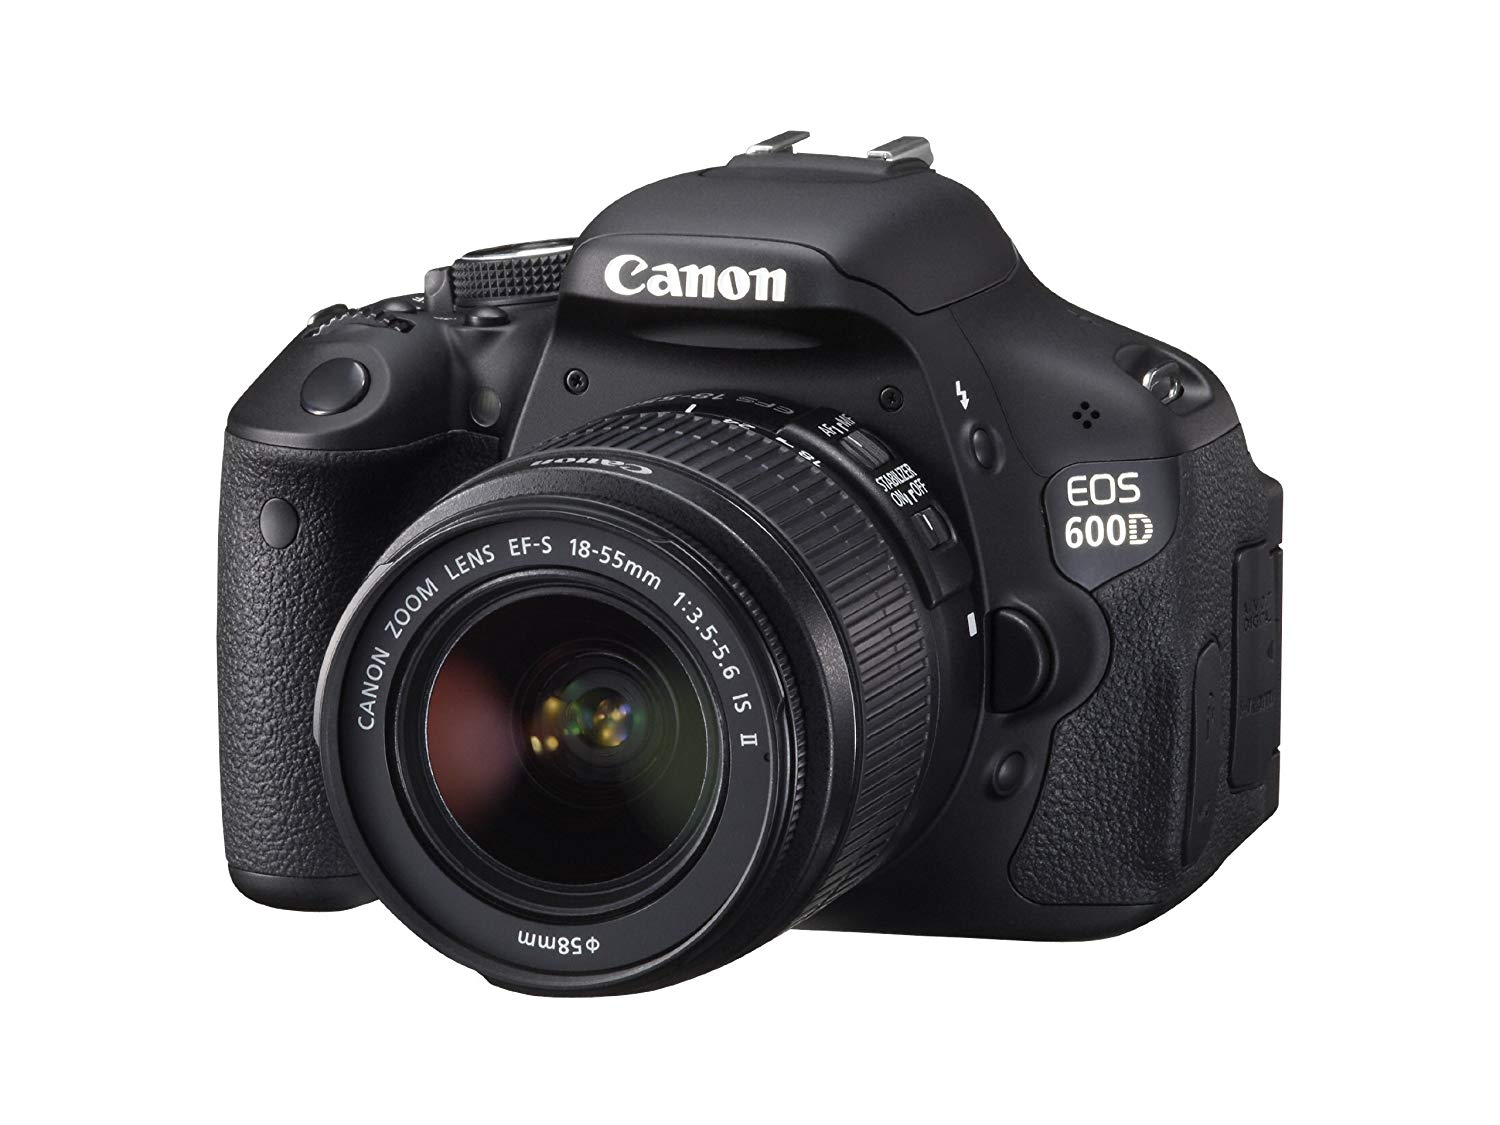 Canon EOS 600D - Cámara Réflex Digital 18.7 MP (Objetivo EF-S 18-55mm) (Reacondicionado Certificado)